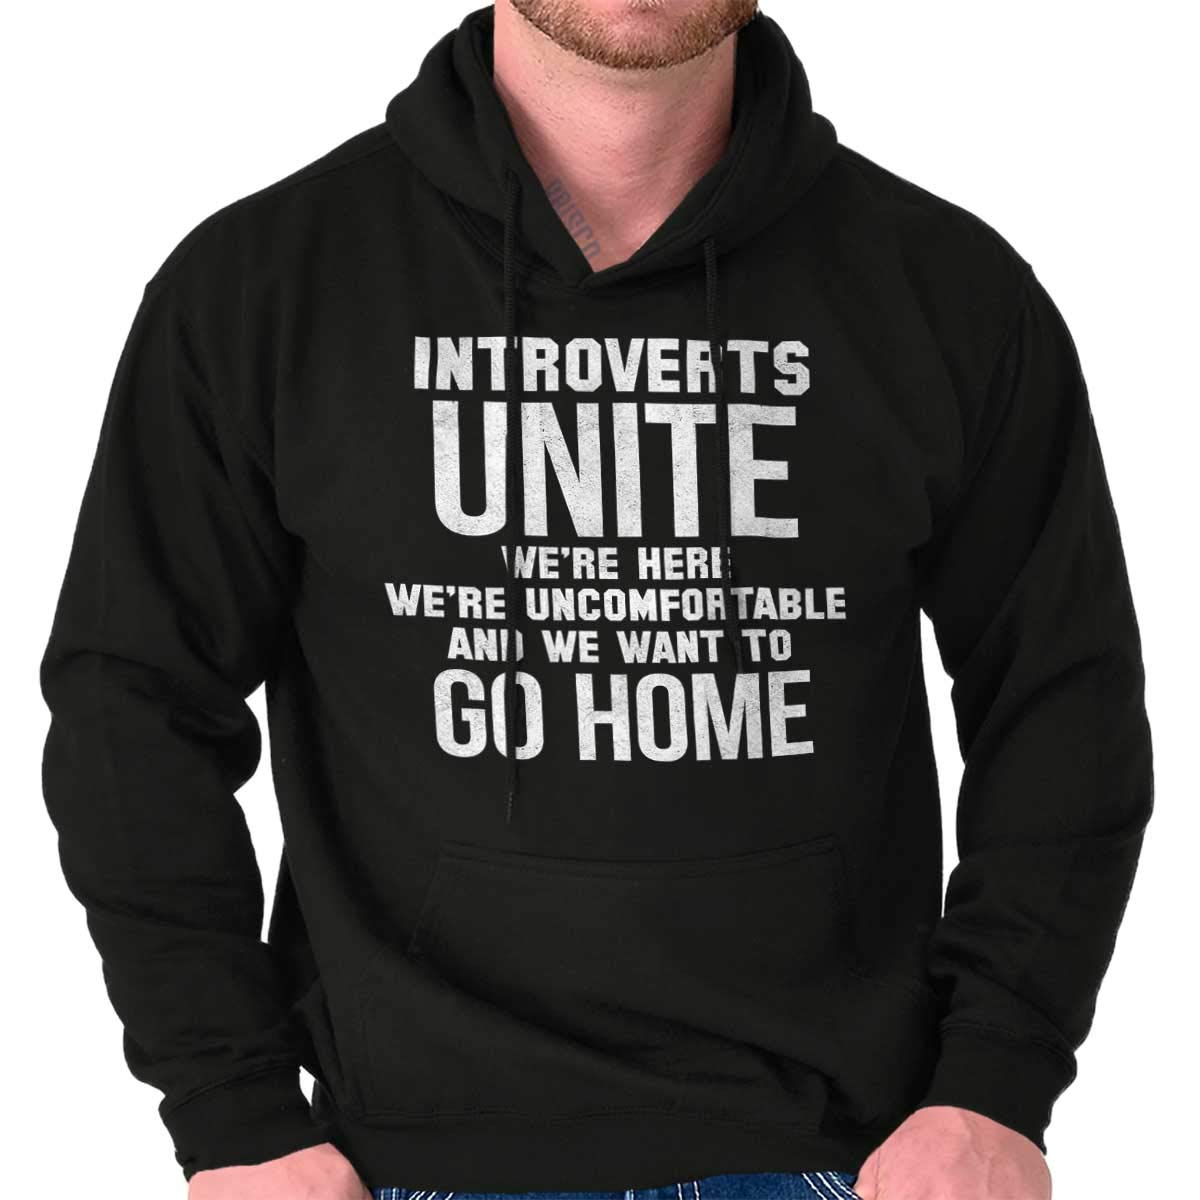 Brisco Brands Introverts Unite Here Funny Antisocial Gym Hoodie